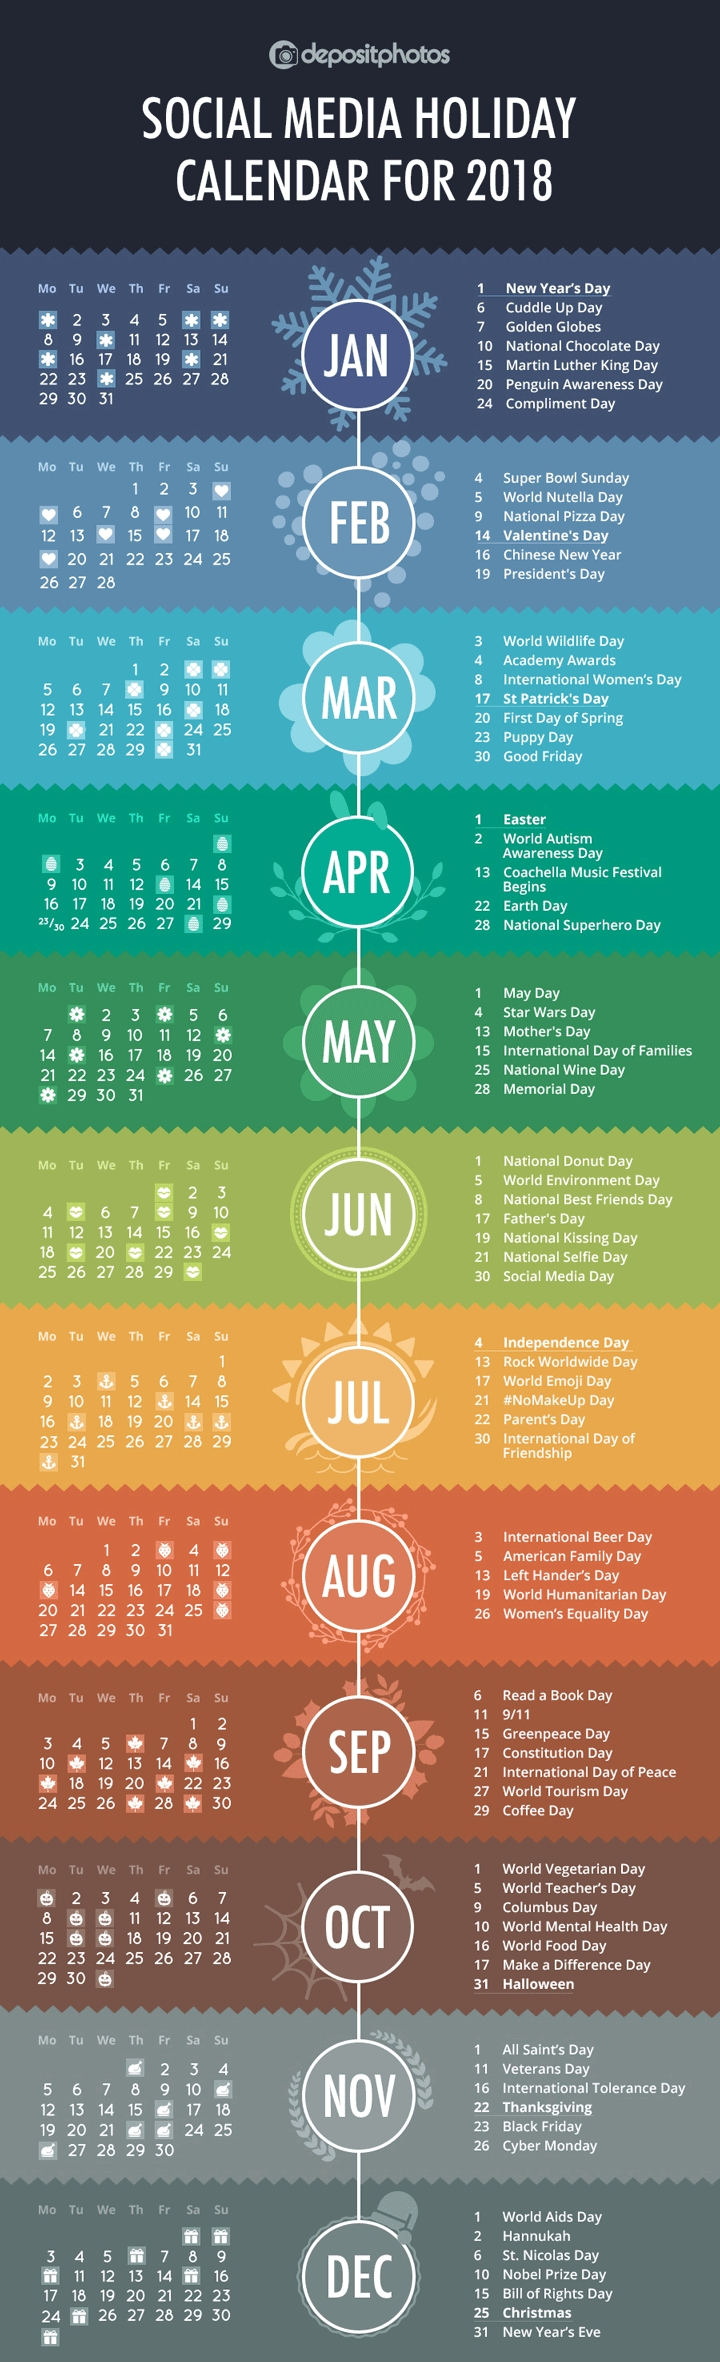 Calendar With Every Holiday In The World